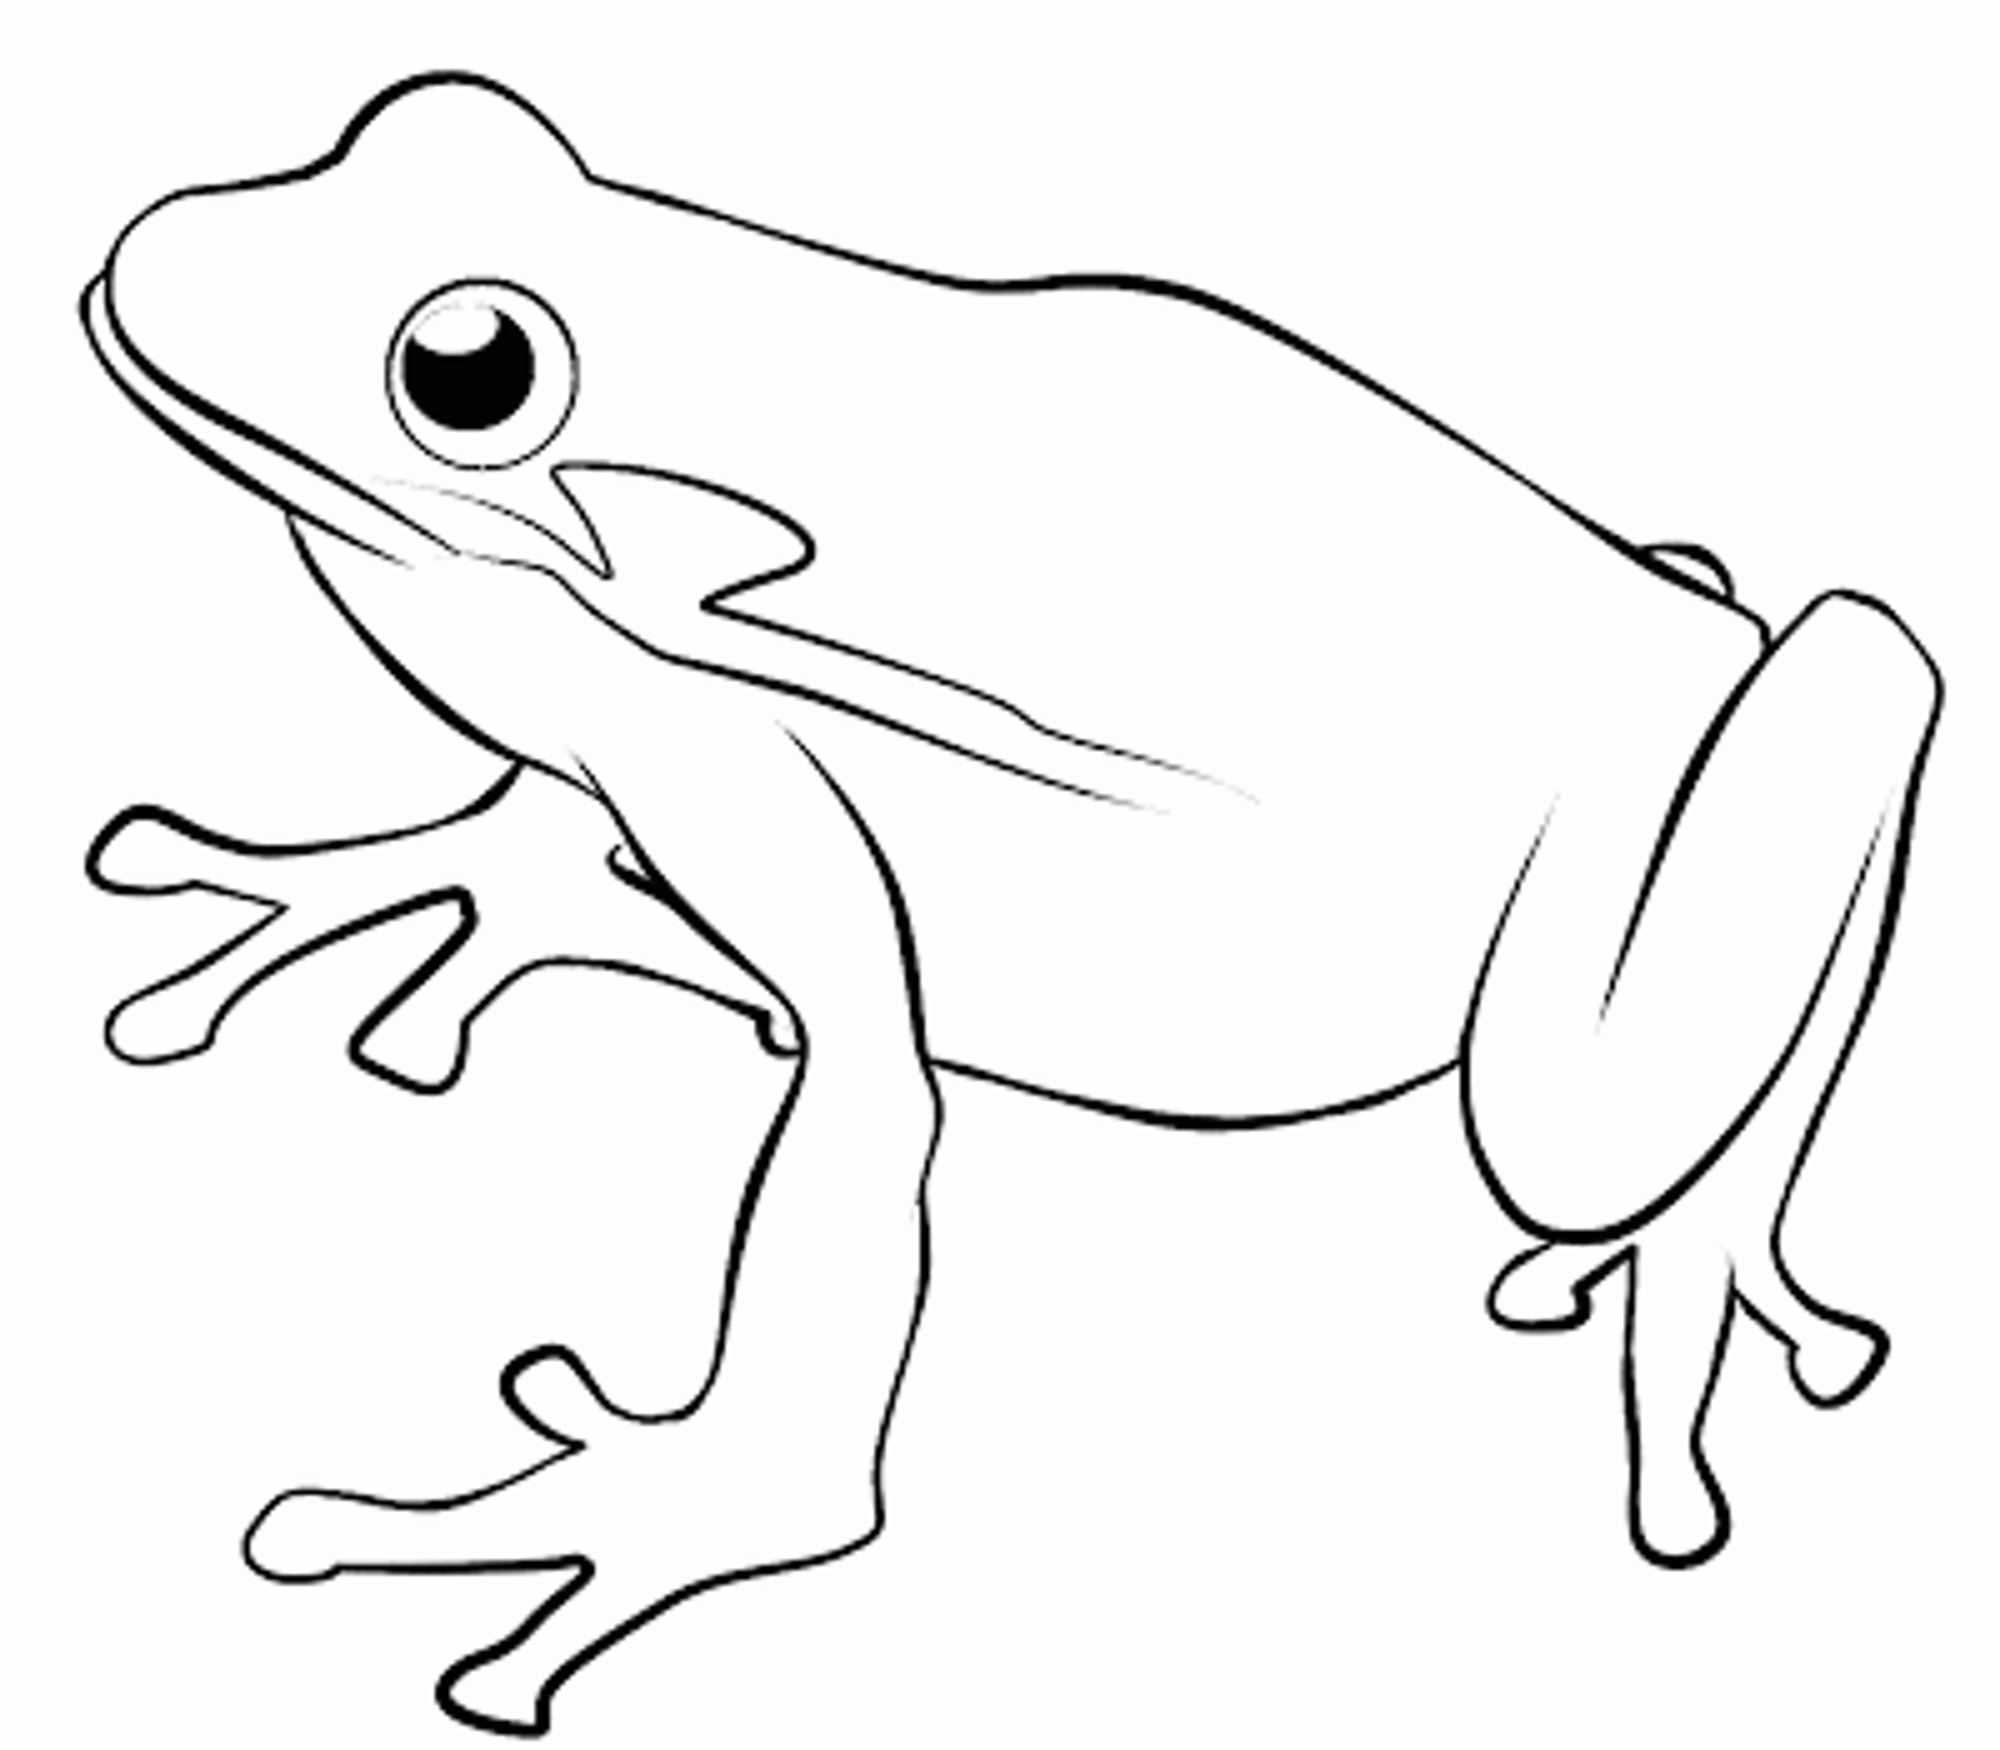 2000x1750 Page 2 Of Draw Tags Coloring Pages Draw A Toad Octopus Drawings